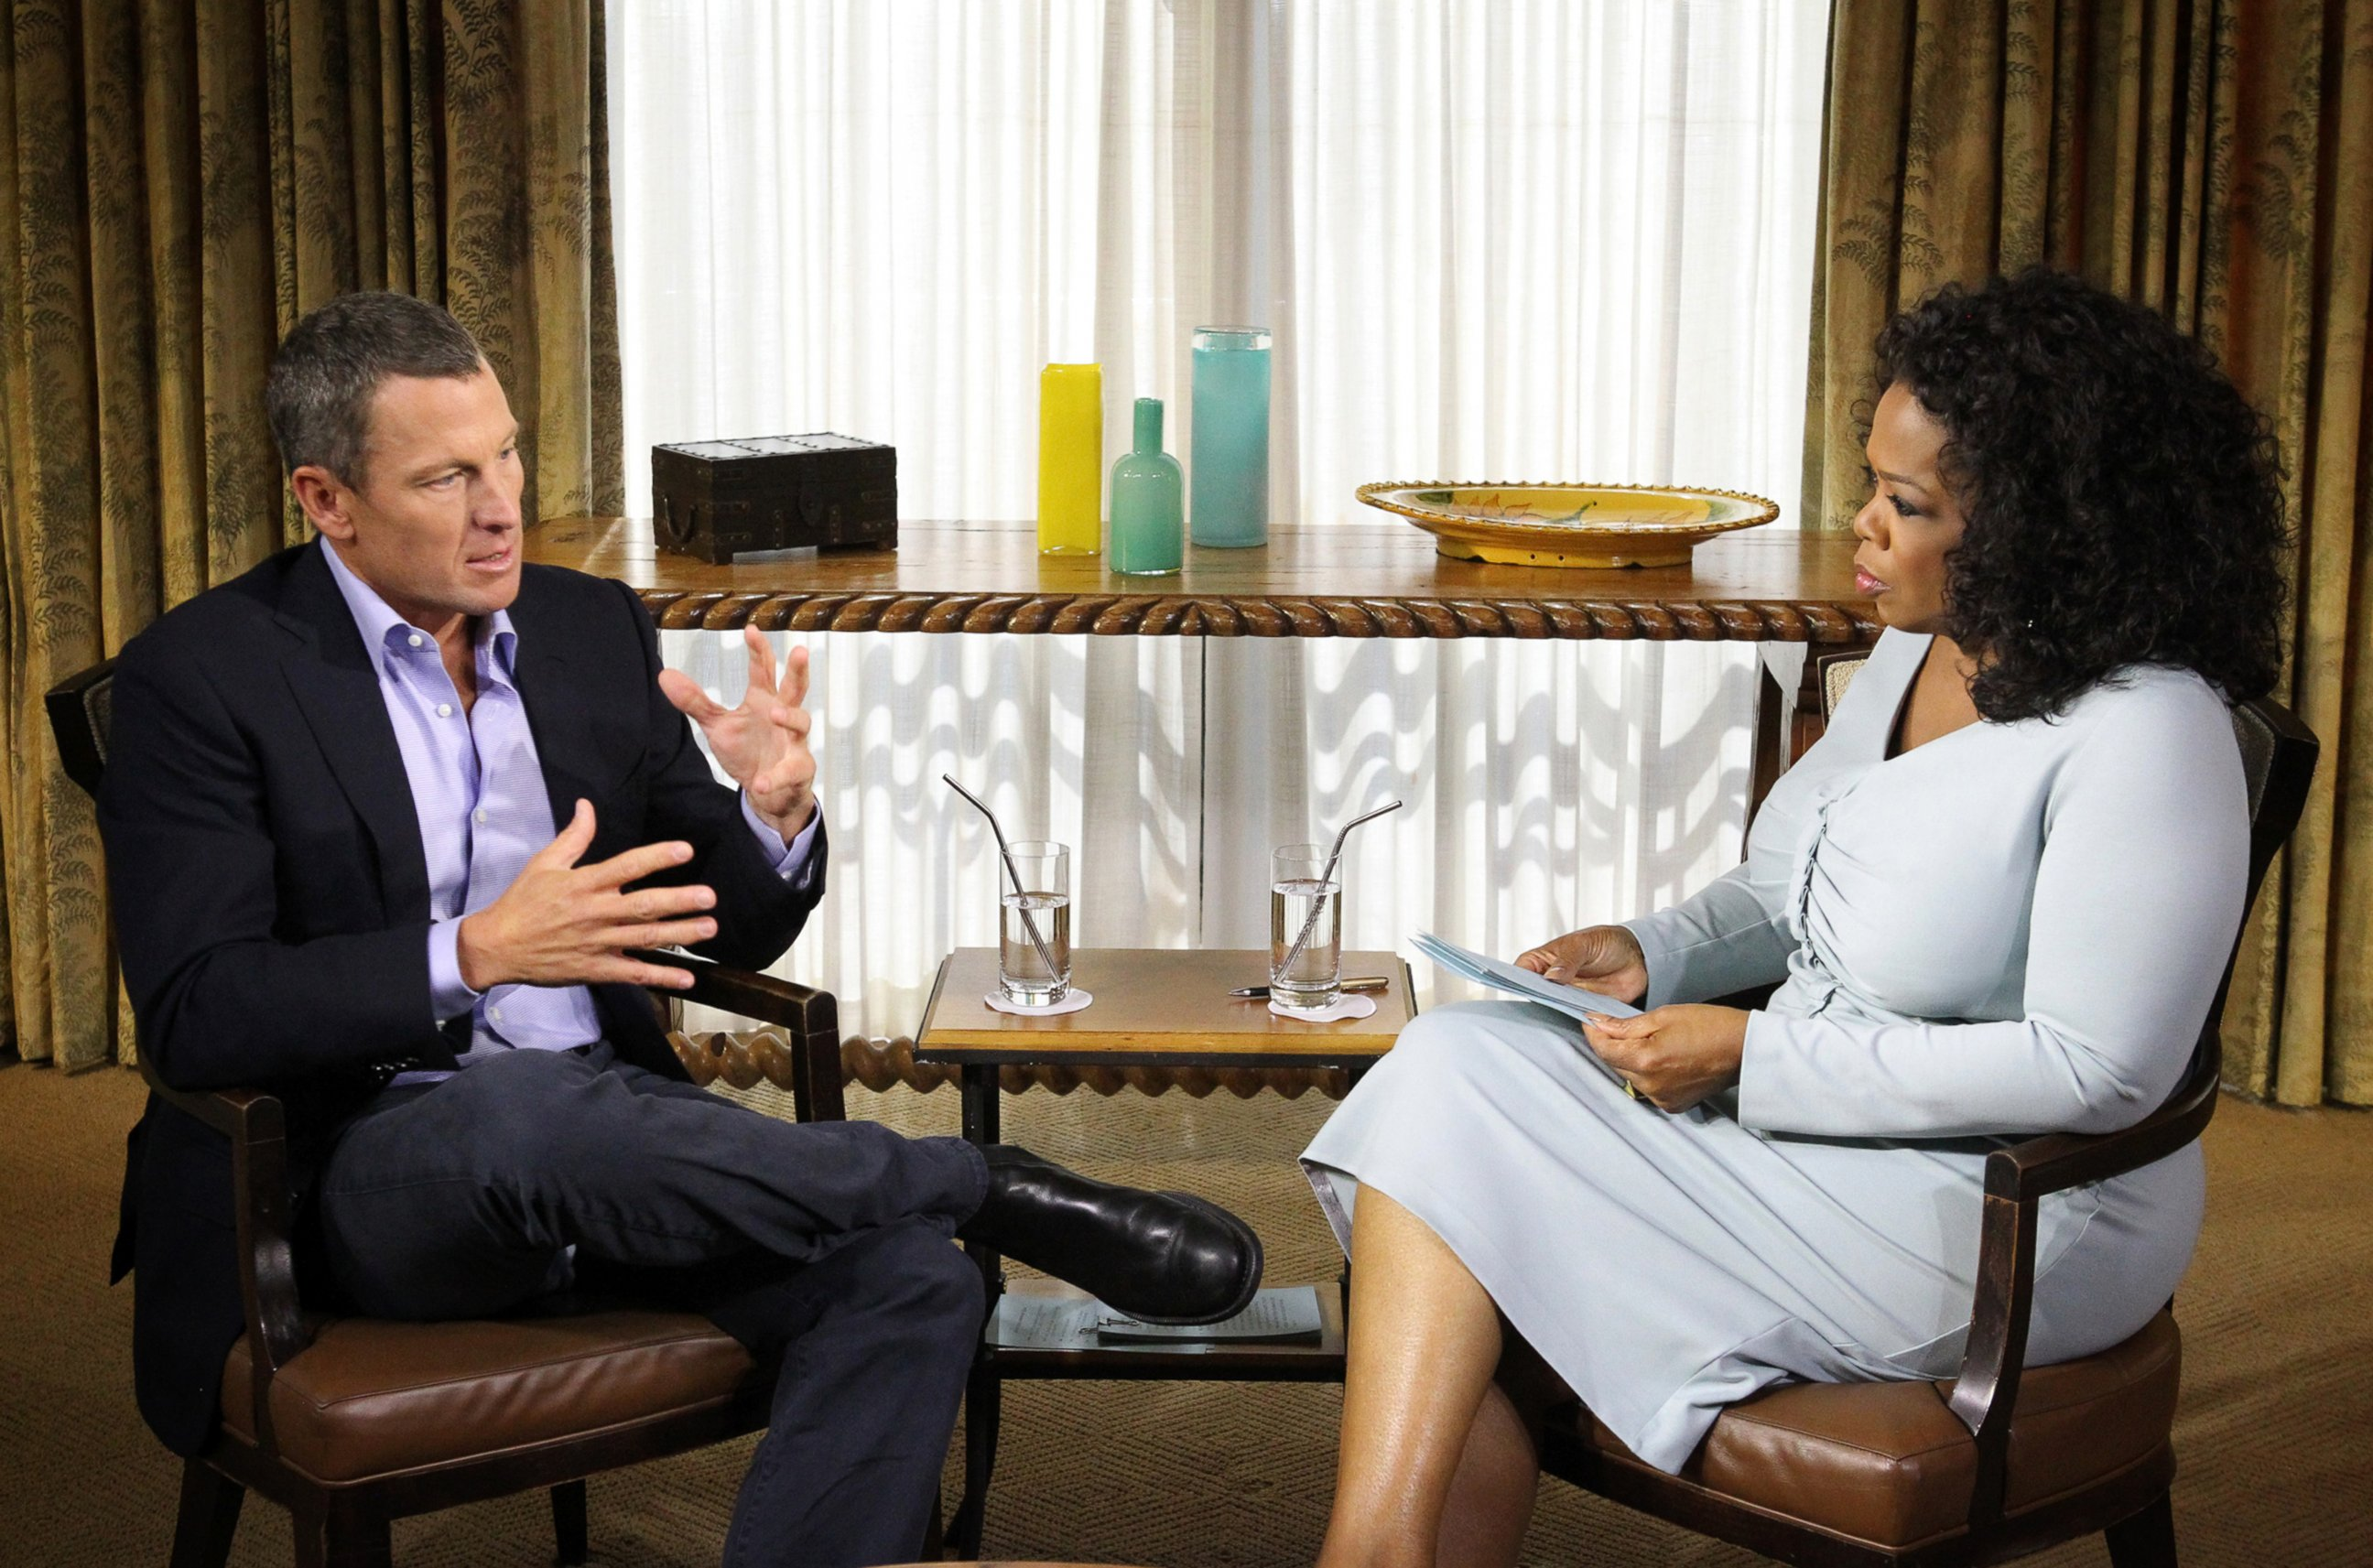 2013:Lance Armstrong was stripped off all of his Tour de France victories. Seven titles were gone because of doping. Here you can see him during an infamous interview with Oprah Winfrey.